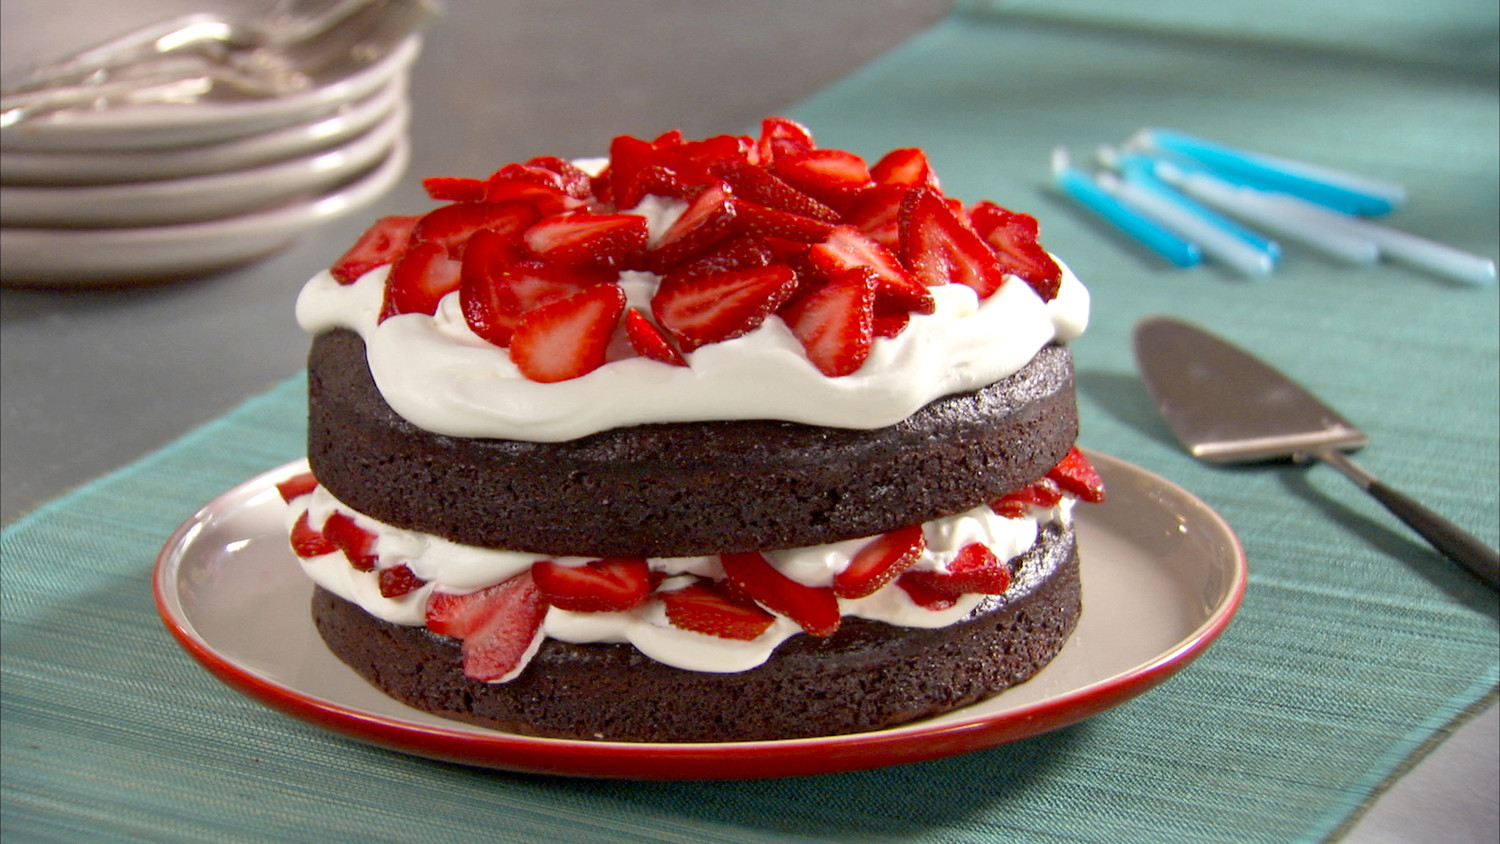 Chocolate Cake with Whipped Cream and Berries Recipe ...